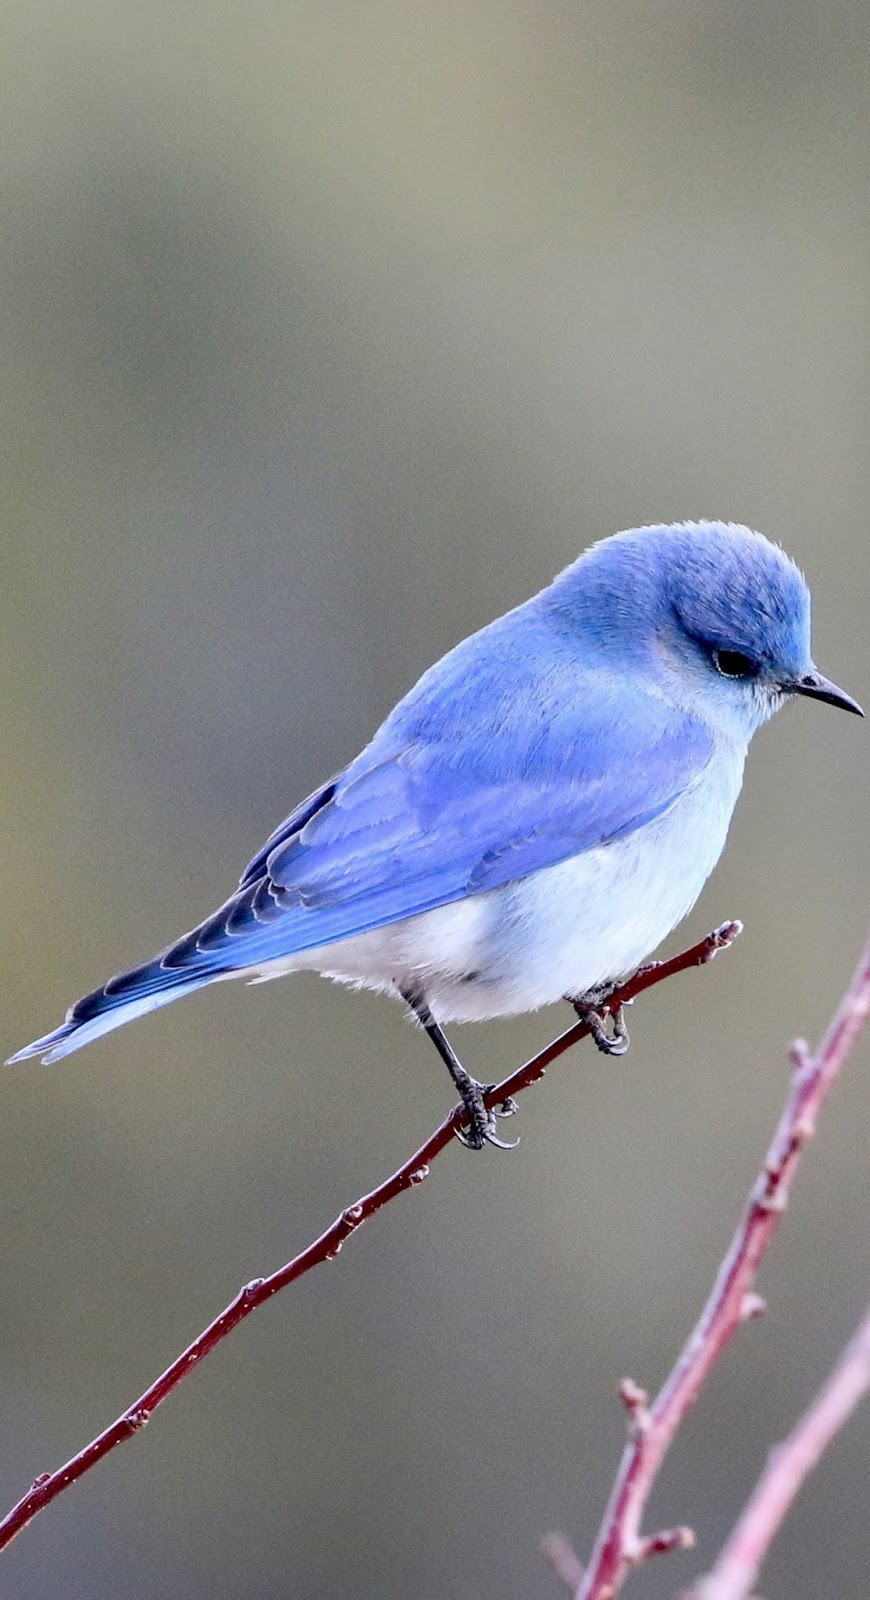 A cute little blue bird.